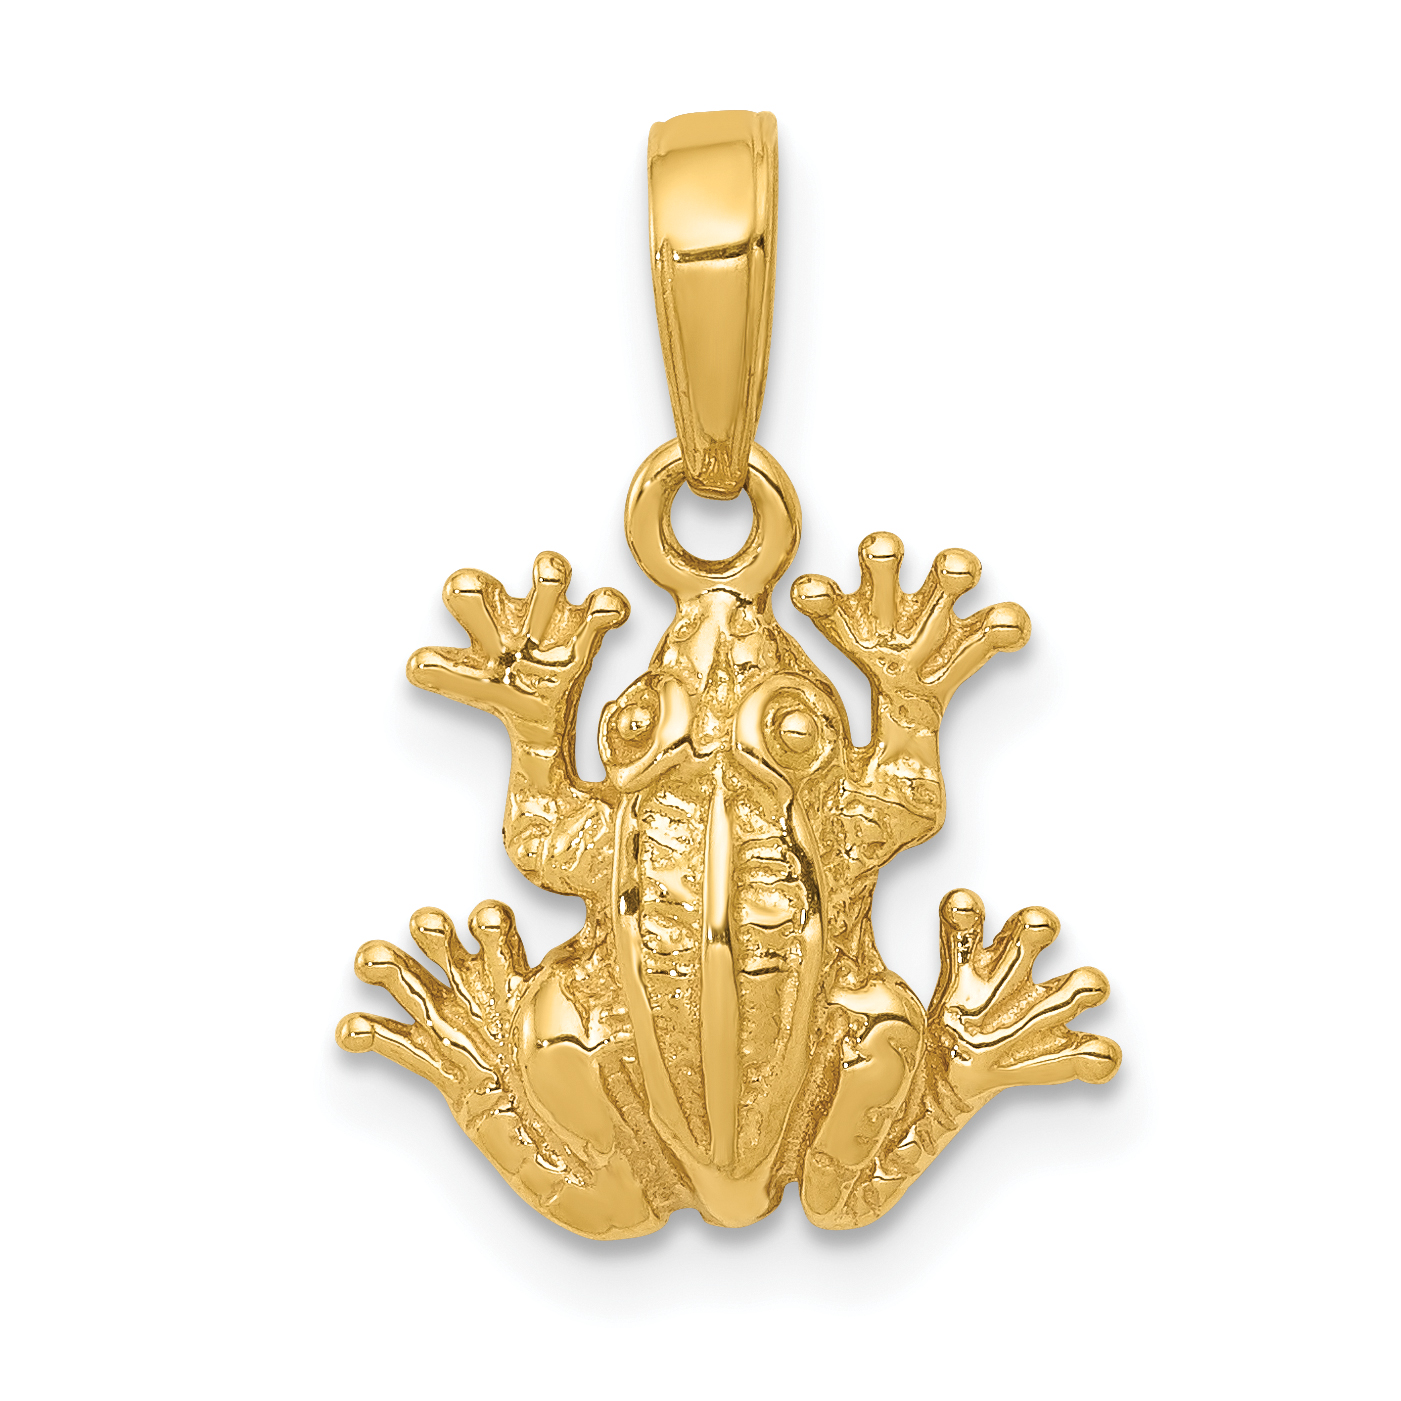 2 d frog pendant 14k 2 d frog pendant mozeypictures Image collections